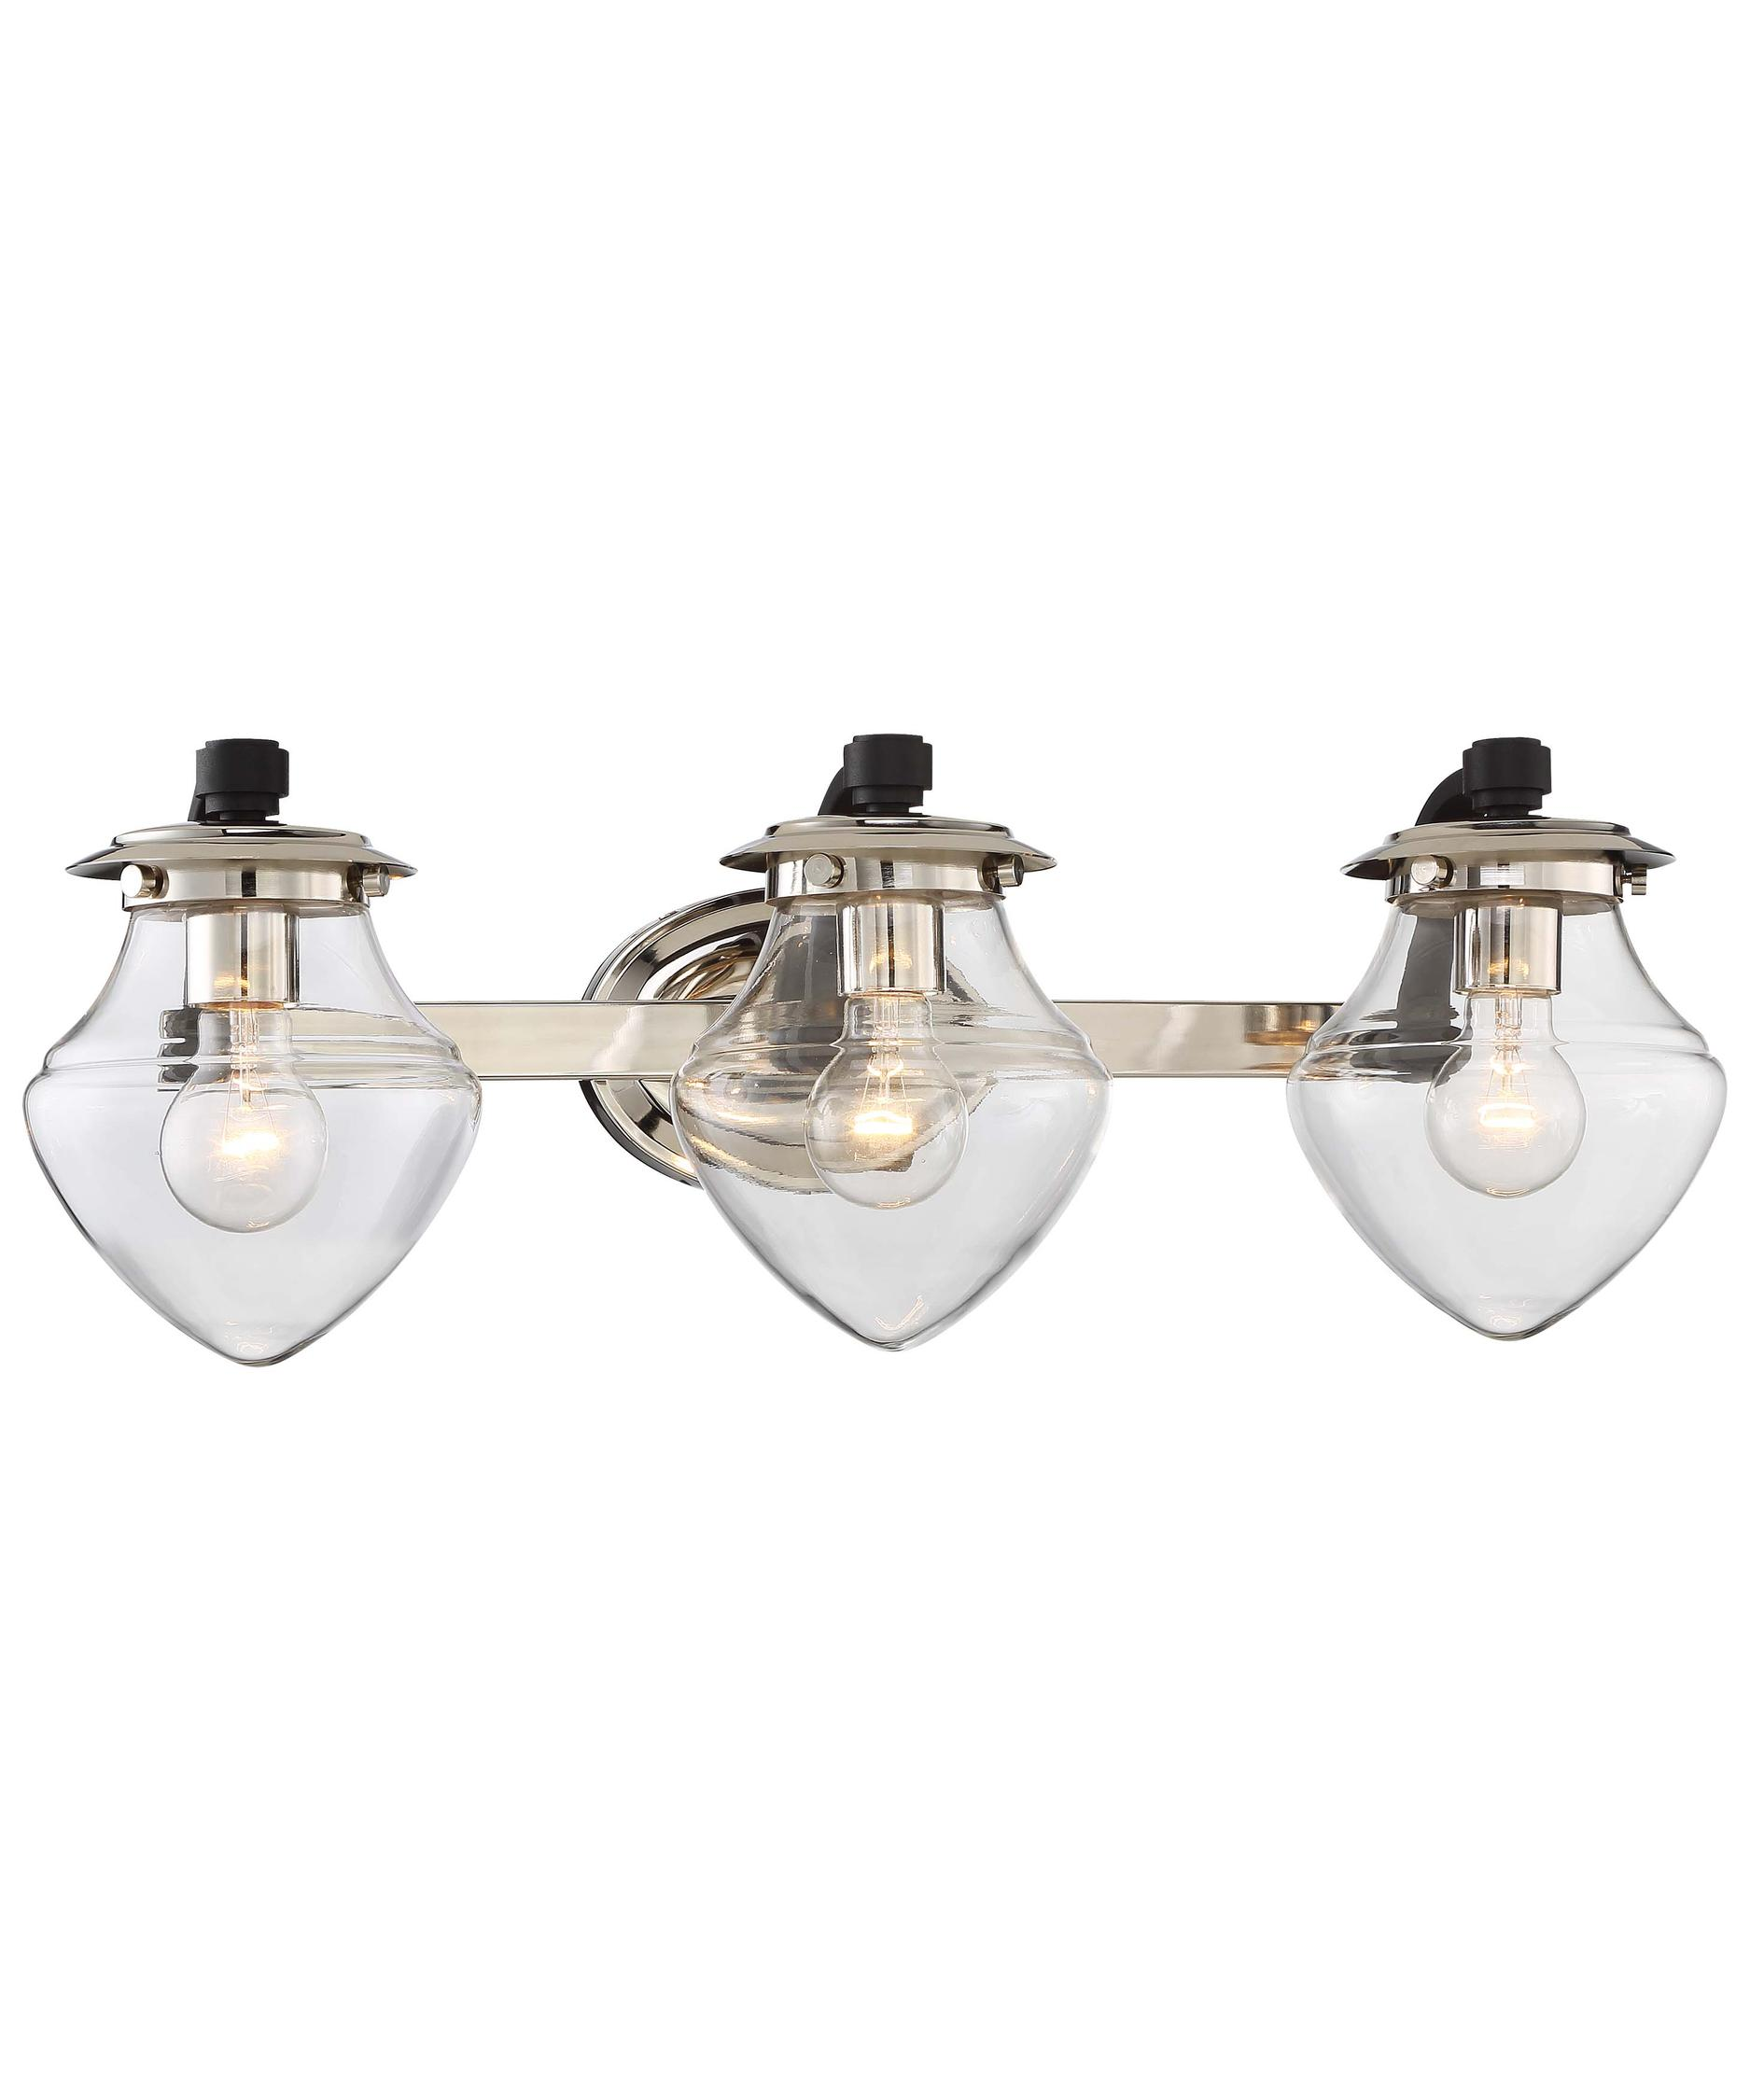 Shown In Polished Nickel Finish And Clear Glass